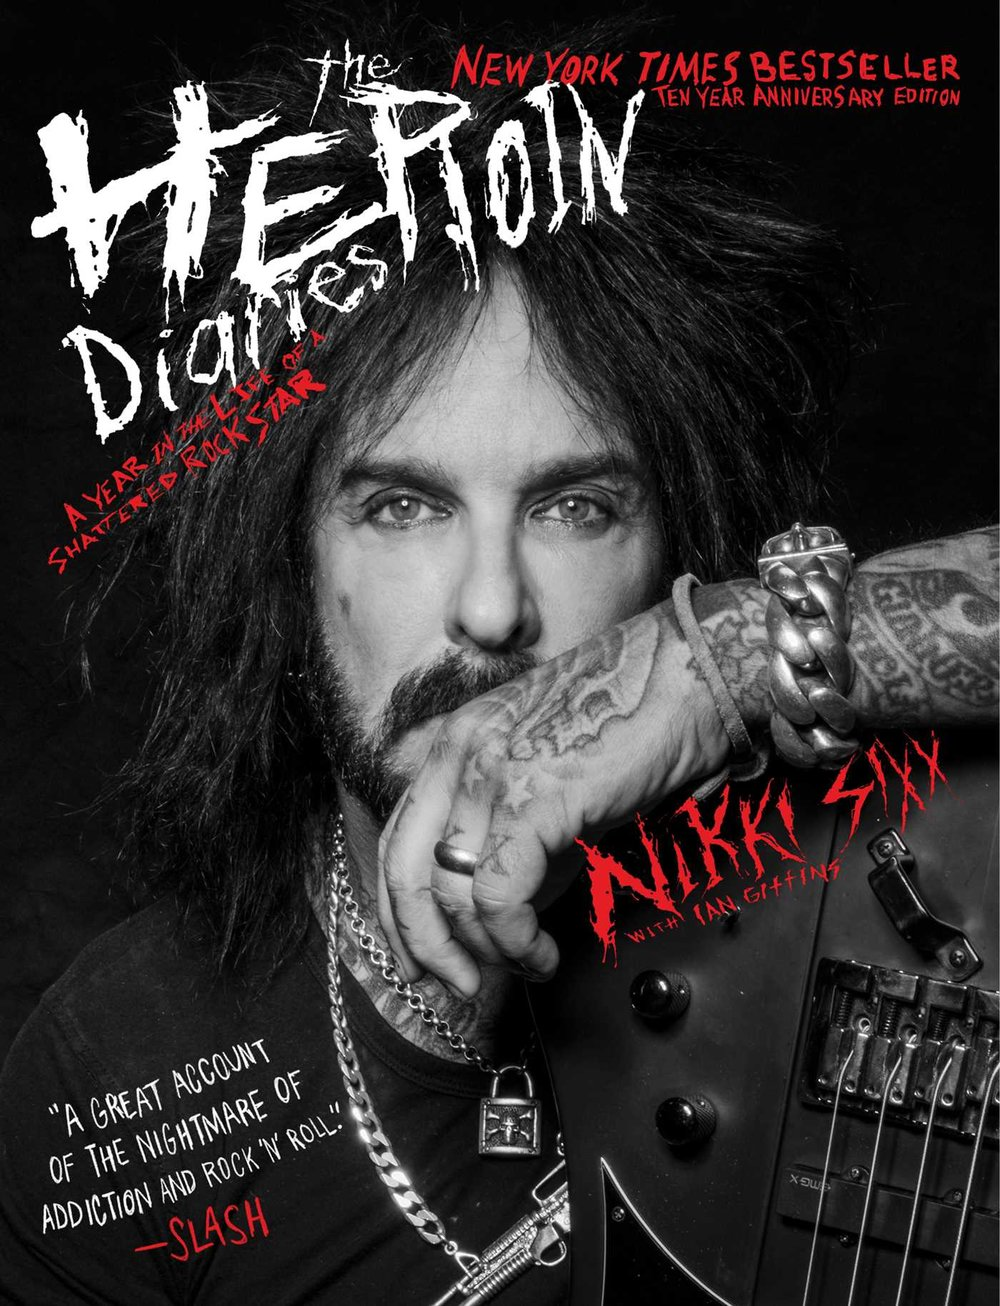 the-heroin-diaries-ten-year-anniversary-edition-9781501187544_hr.jpg